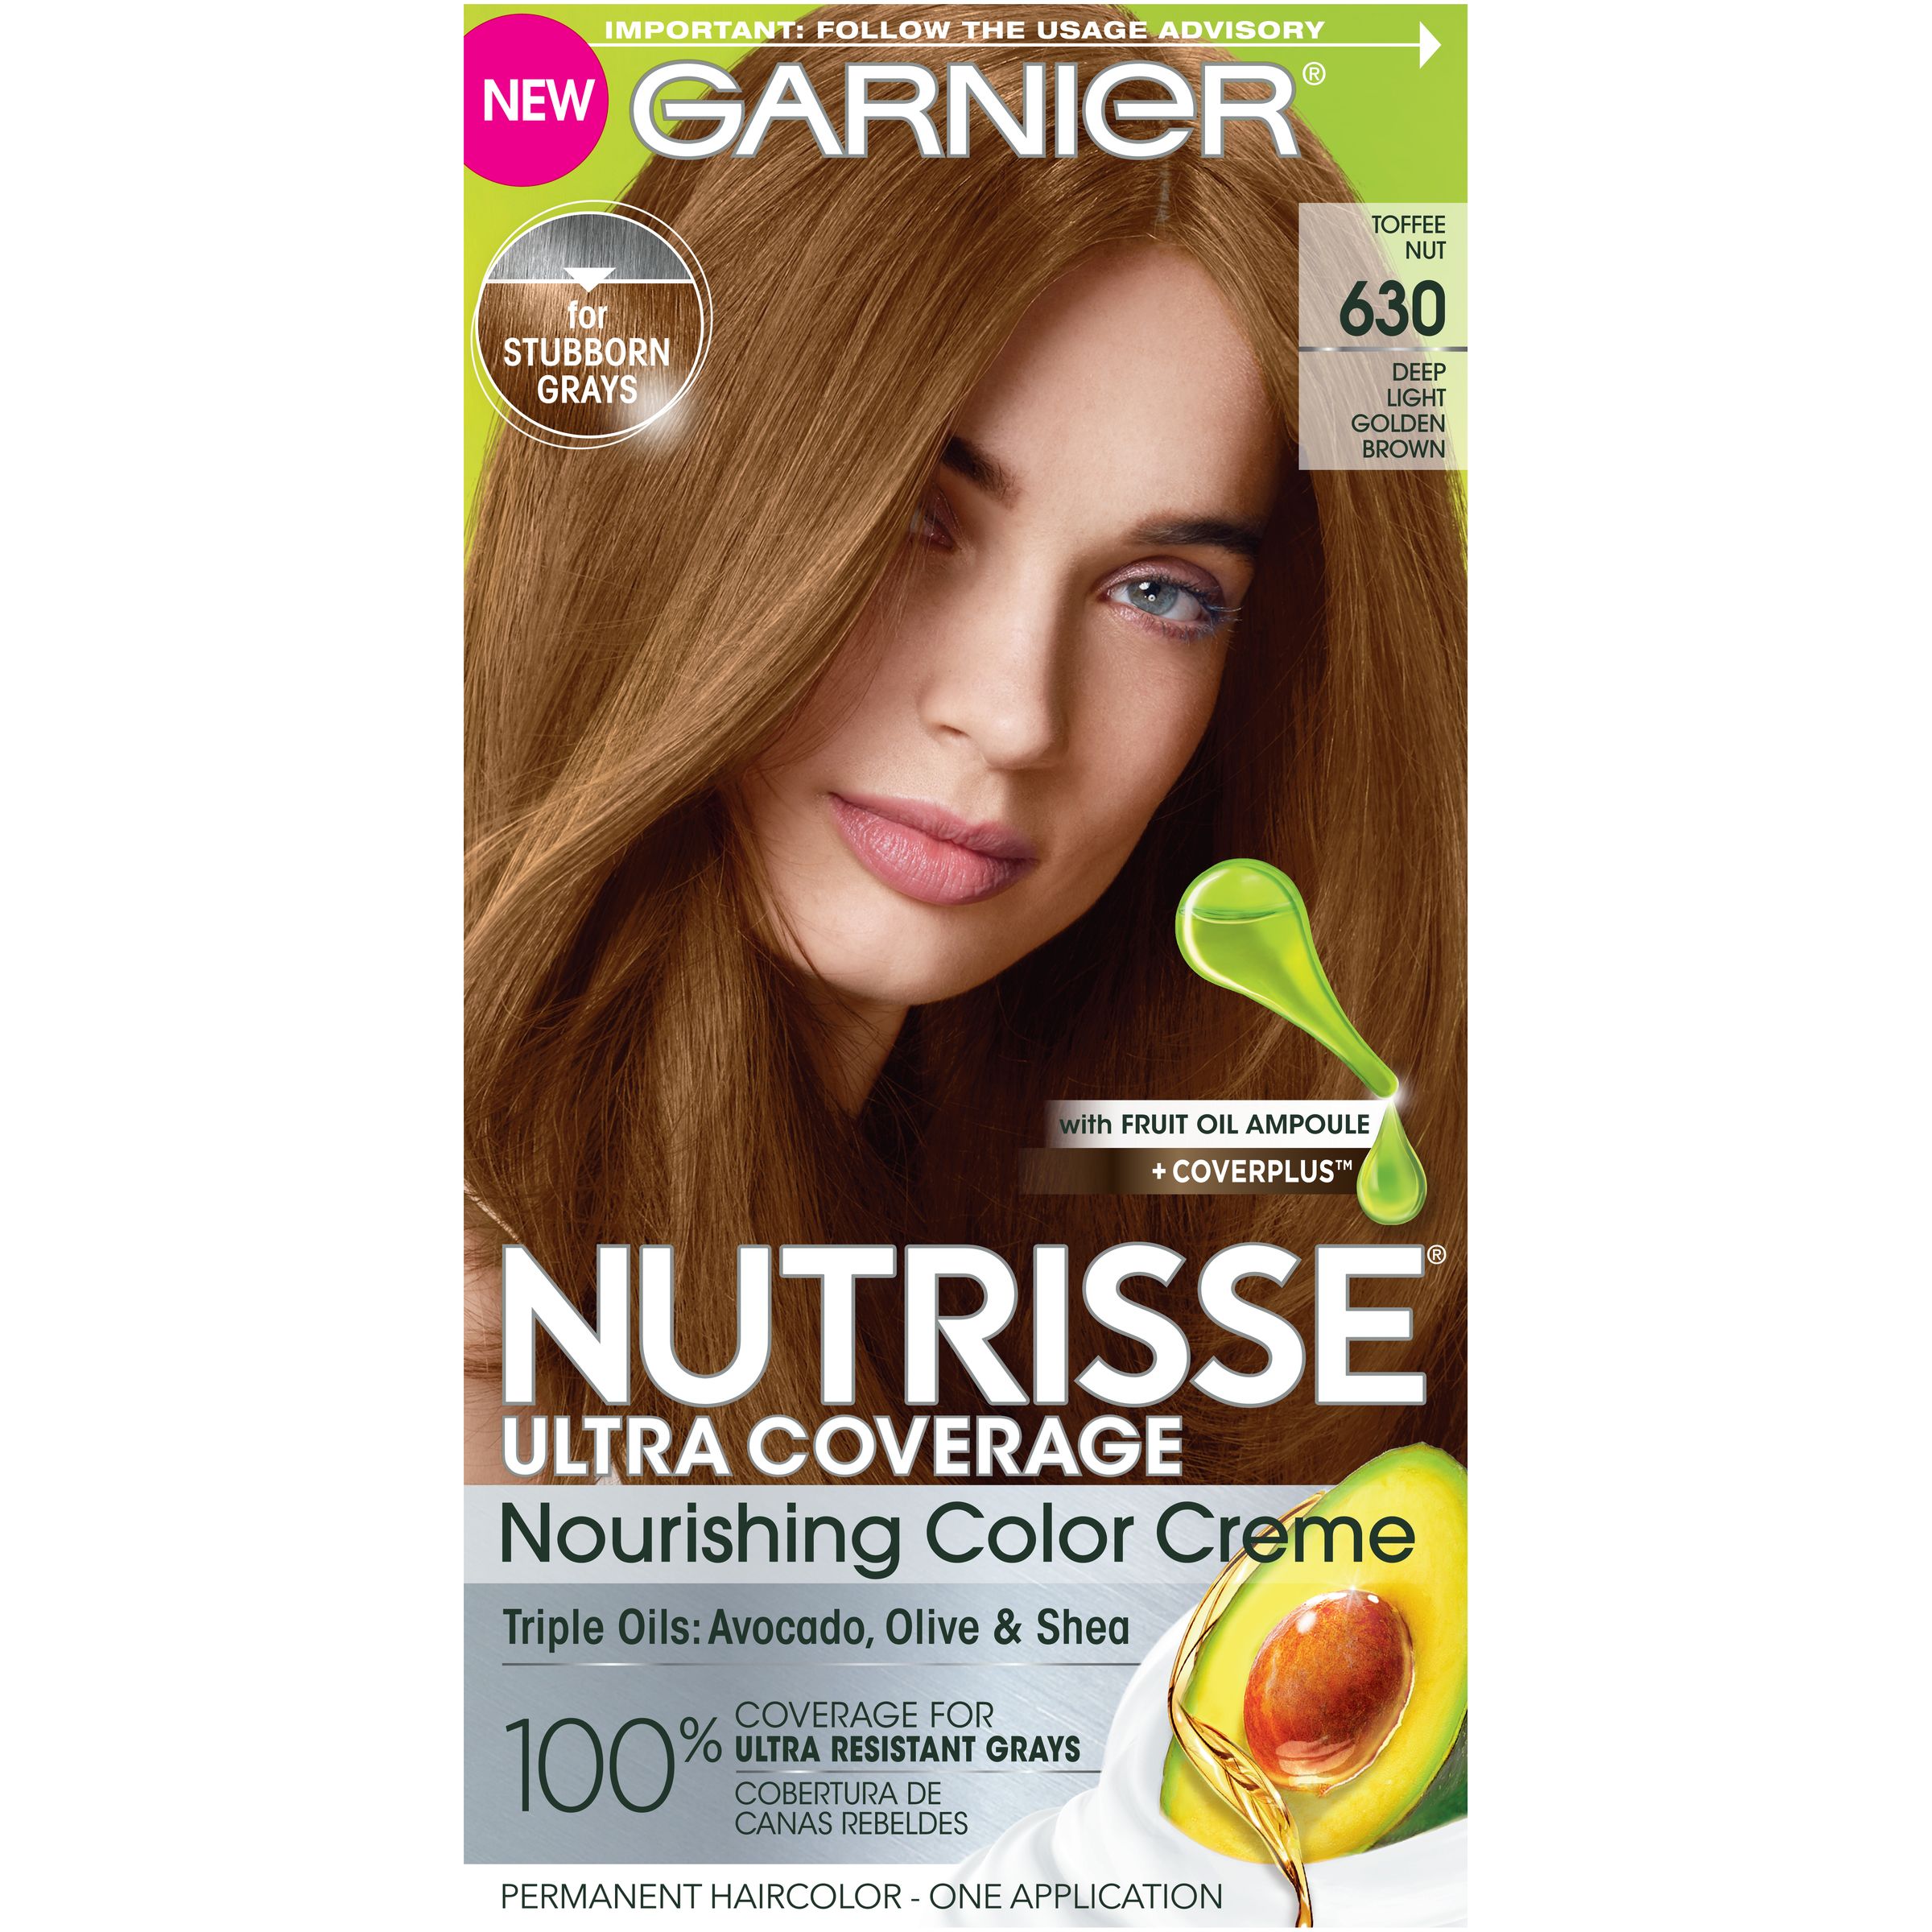 Garnier Nutrisse Ultra Coverage Hair Color